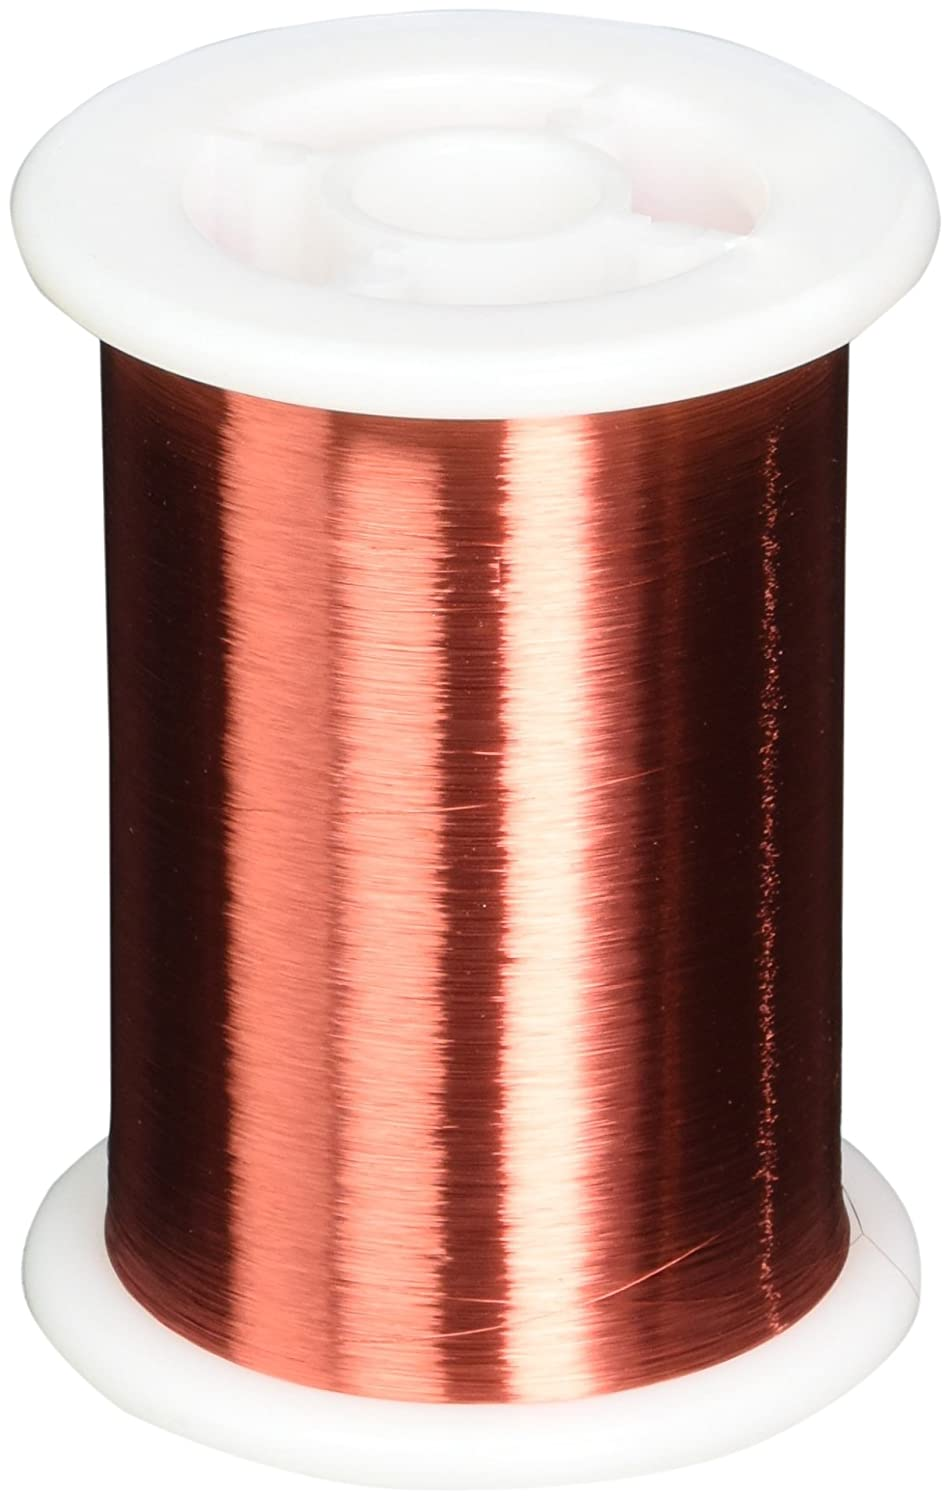 Red 0.0026 Diameter 25657/' Length Elektrisola 25657 Length Remington Industries 42SNSPR.5 42 AWG Magnet Wire Enameled Copper Wire 0.0026 Diameter 8 oz